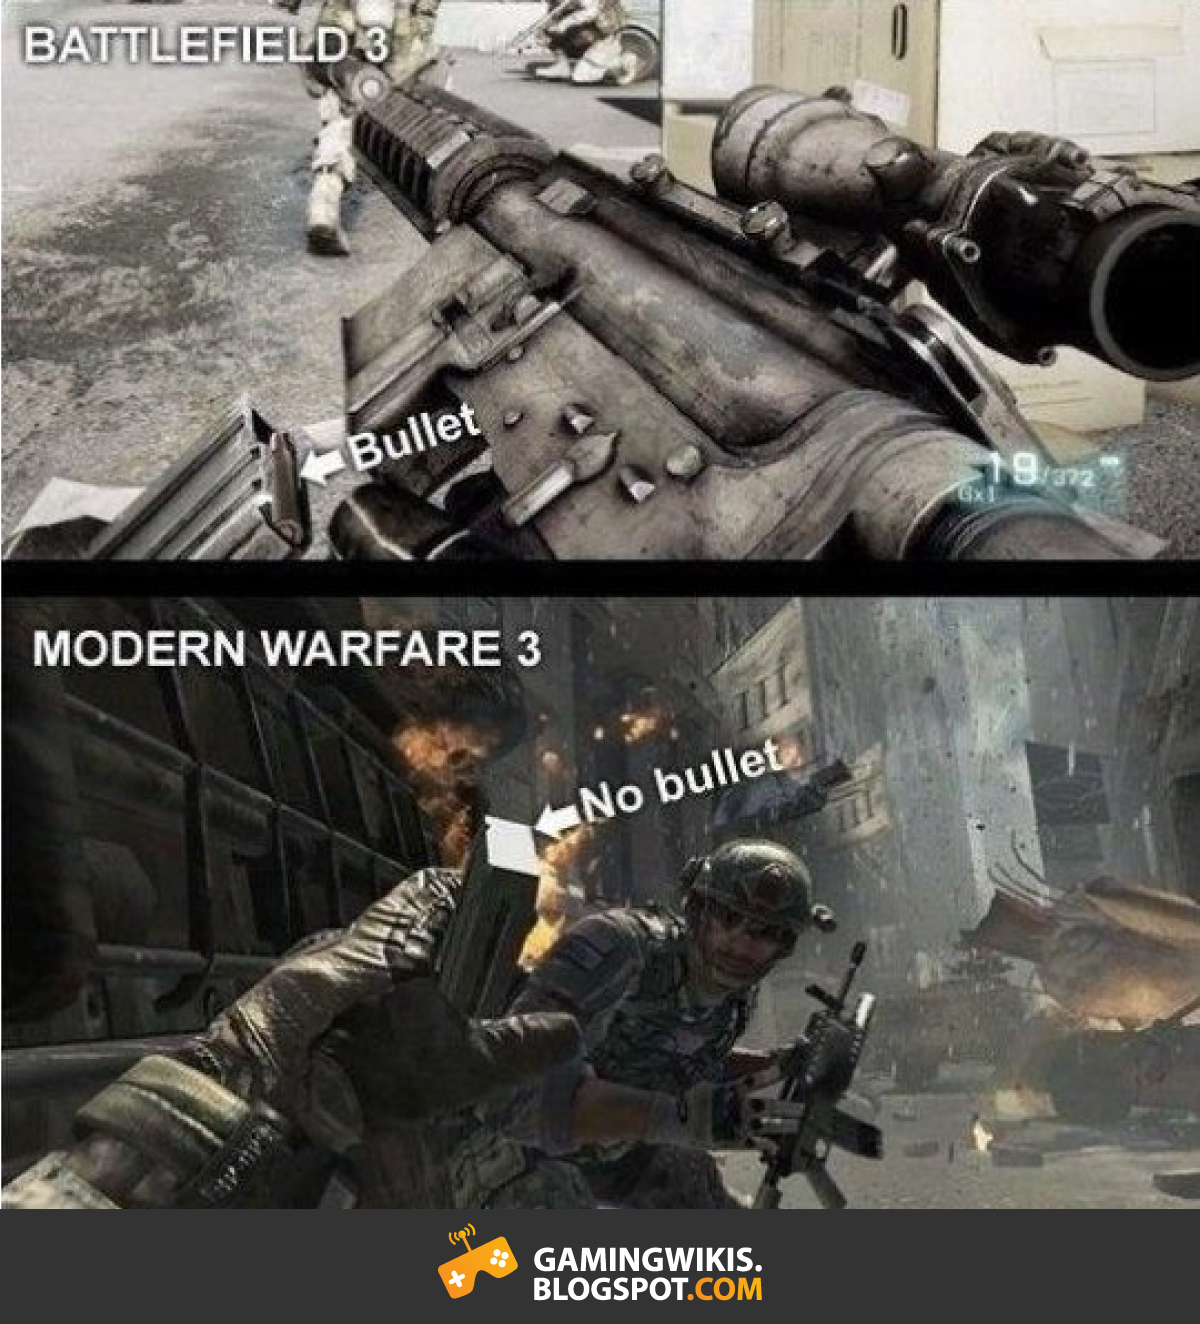 BattleField COD gaming wikis your gaming blog for better gaming 15 funny gaming memes